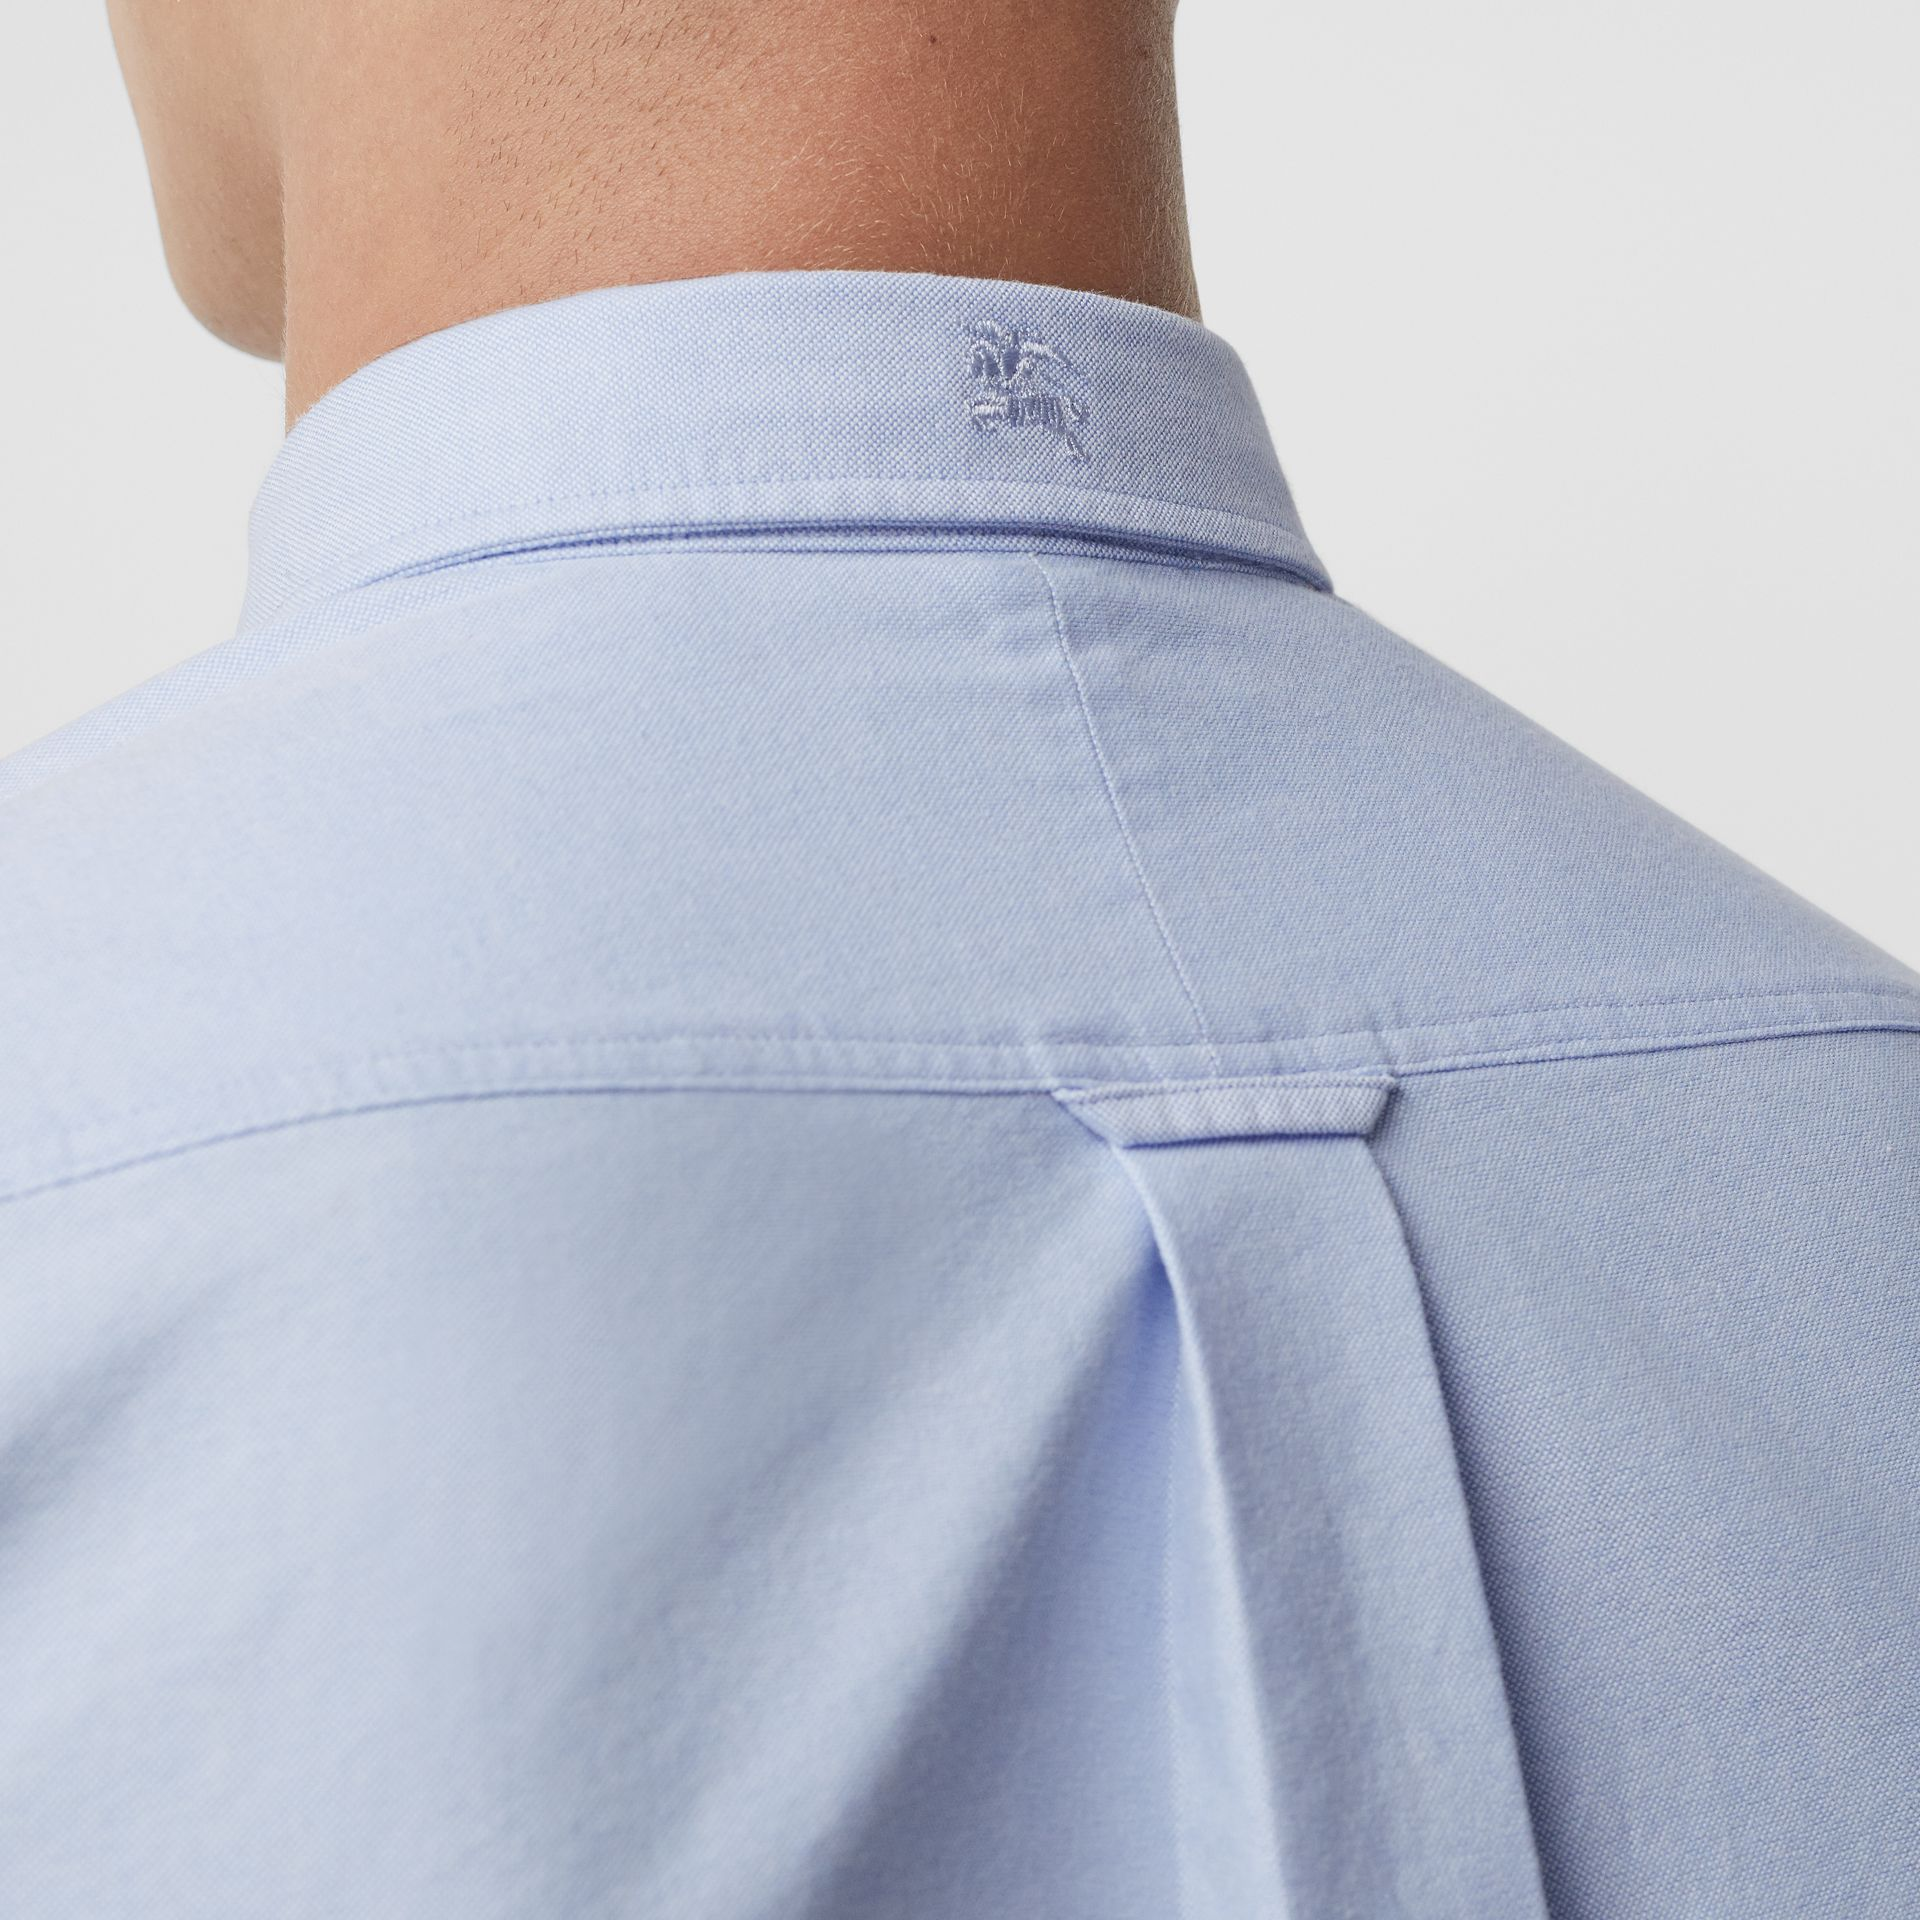 Check Cuff Cotton Oxford Shirt in Cornflower Blue - Men | Burberry United Kingdom - gallery image 4